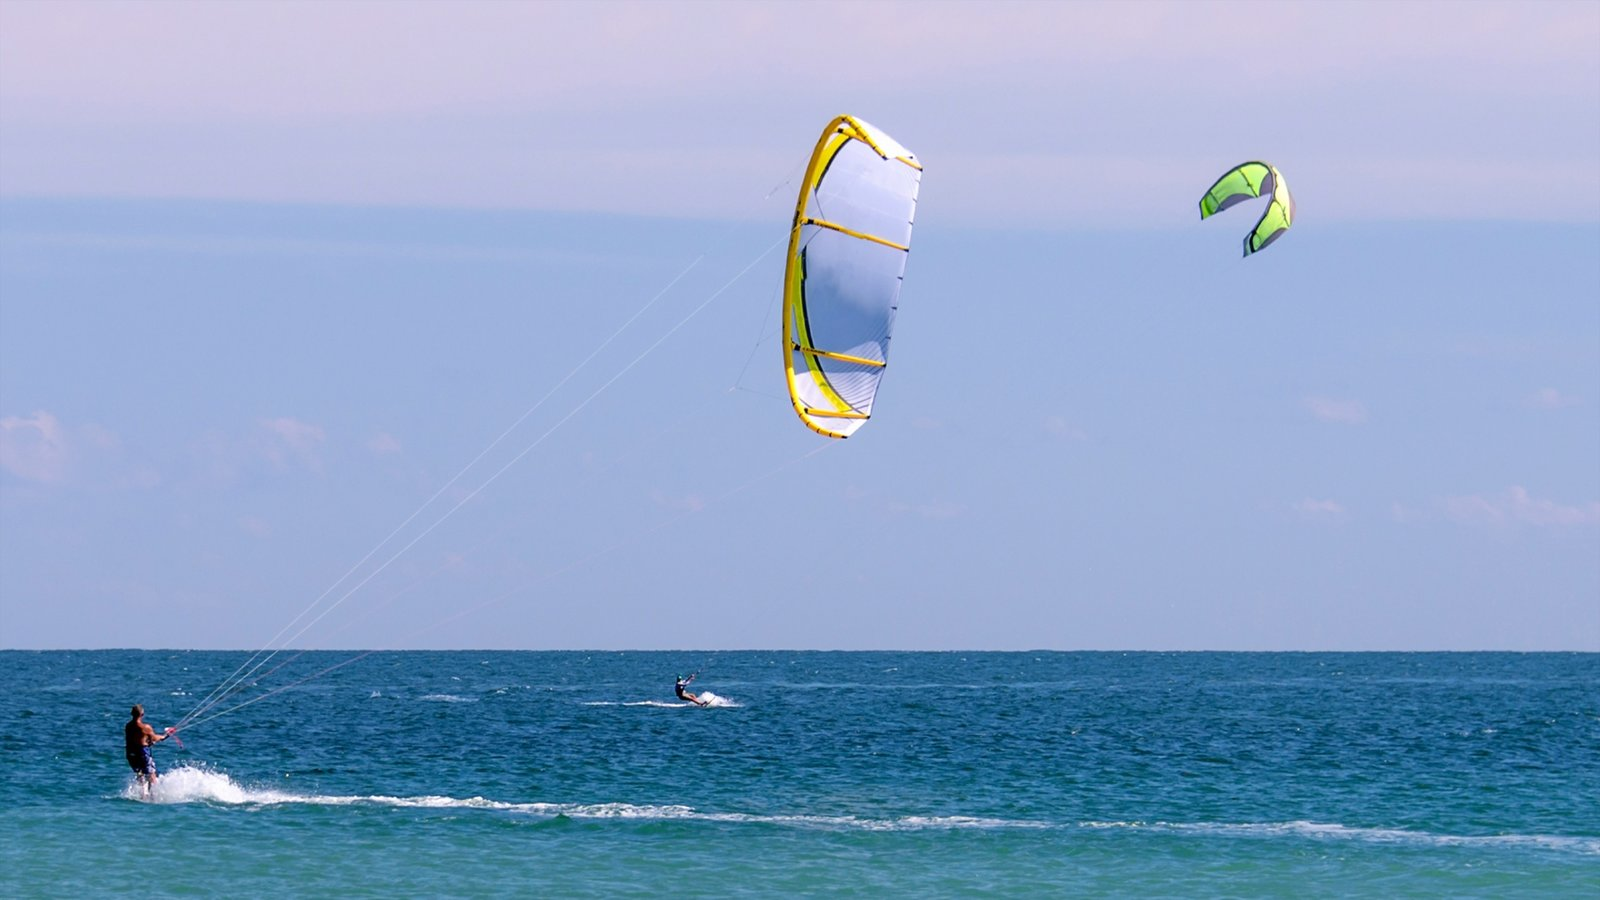 Vero Beach showing waves and kite surfing